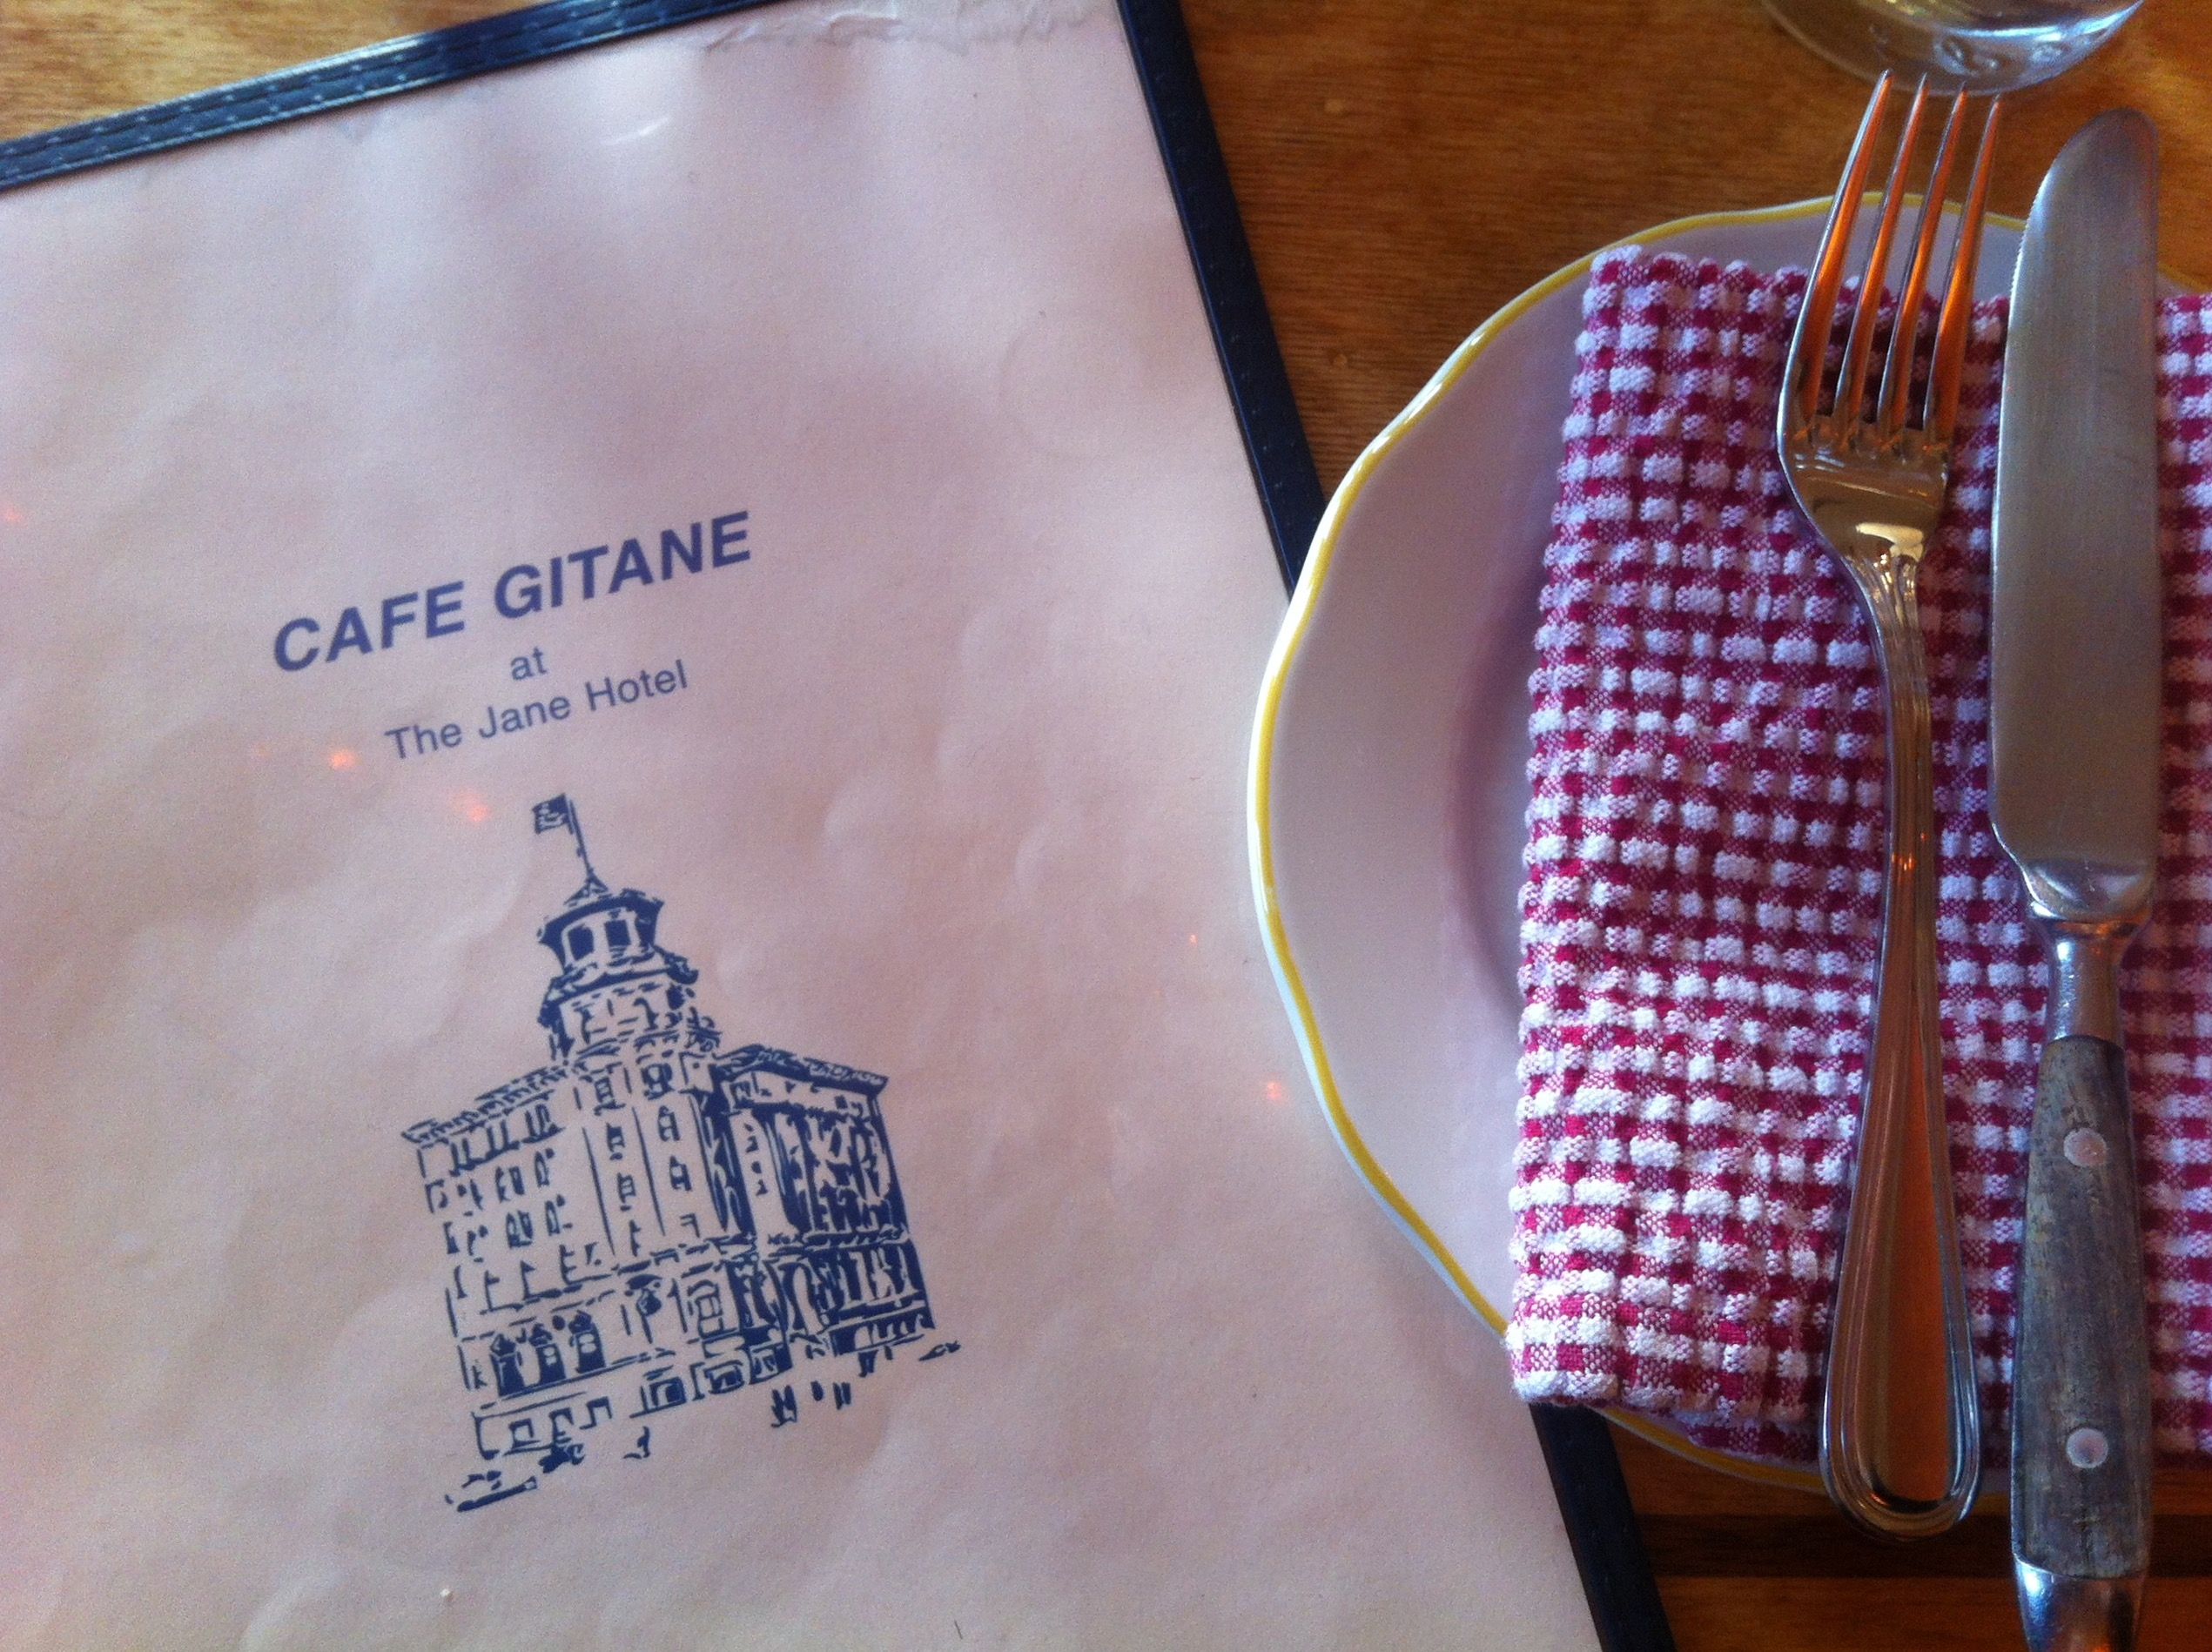 cafe gating at the jane hotel menu